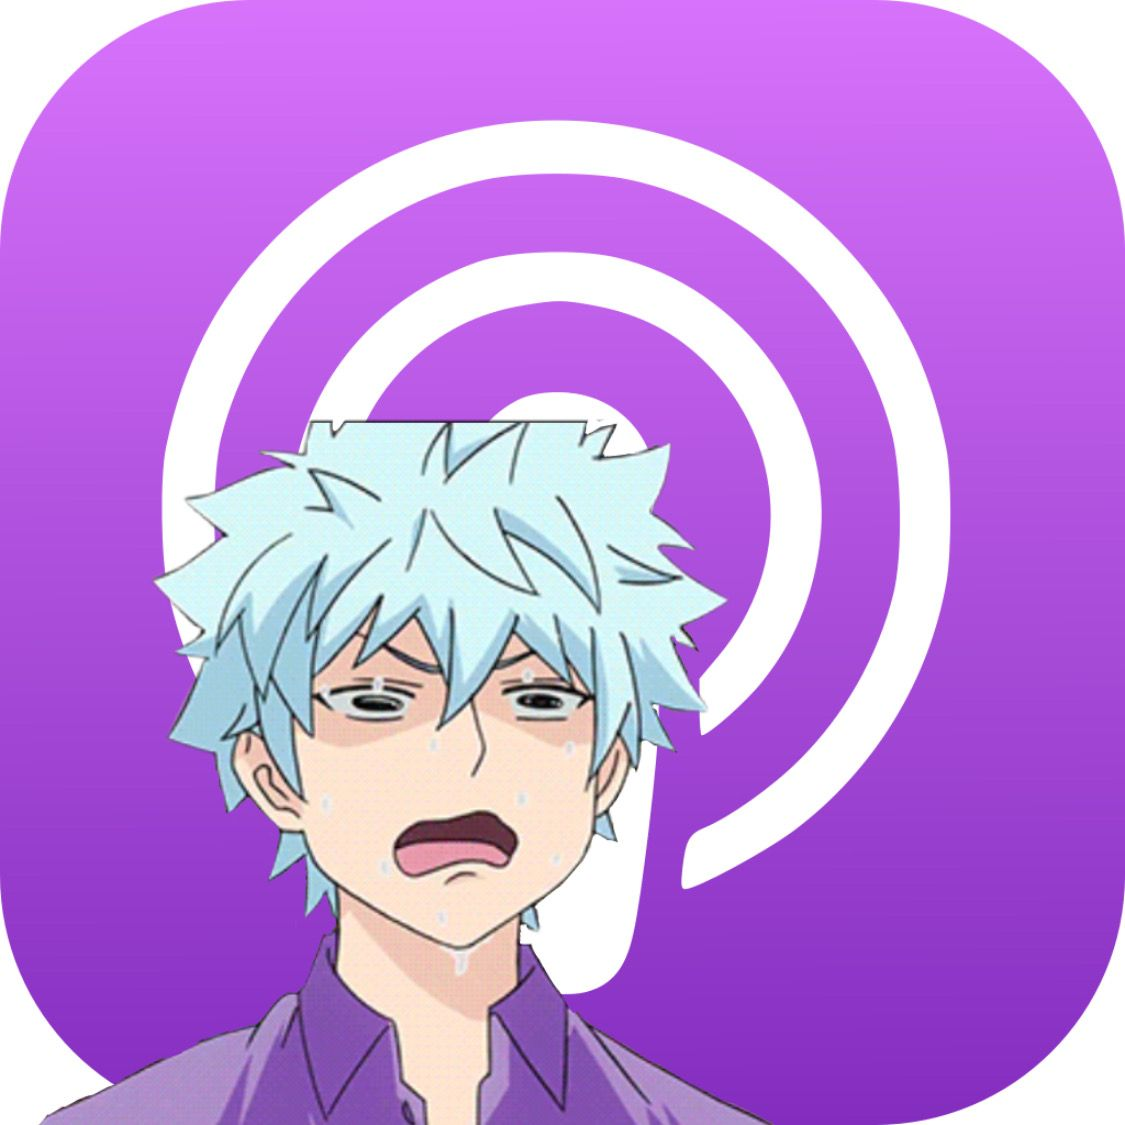 Podcast Icon In 2020 Ios App Icon Animated Icons App Anime